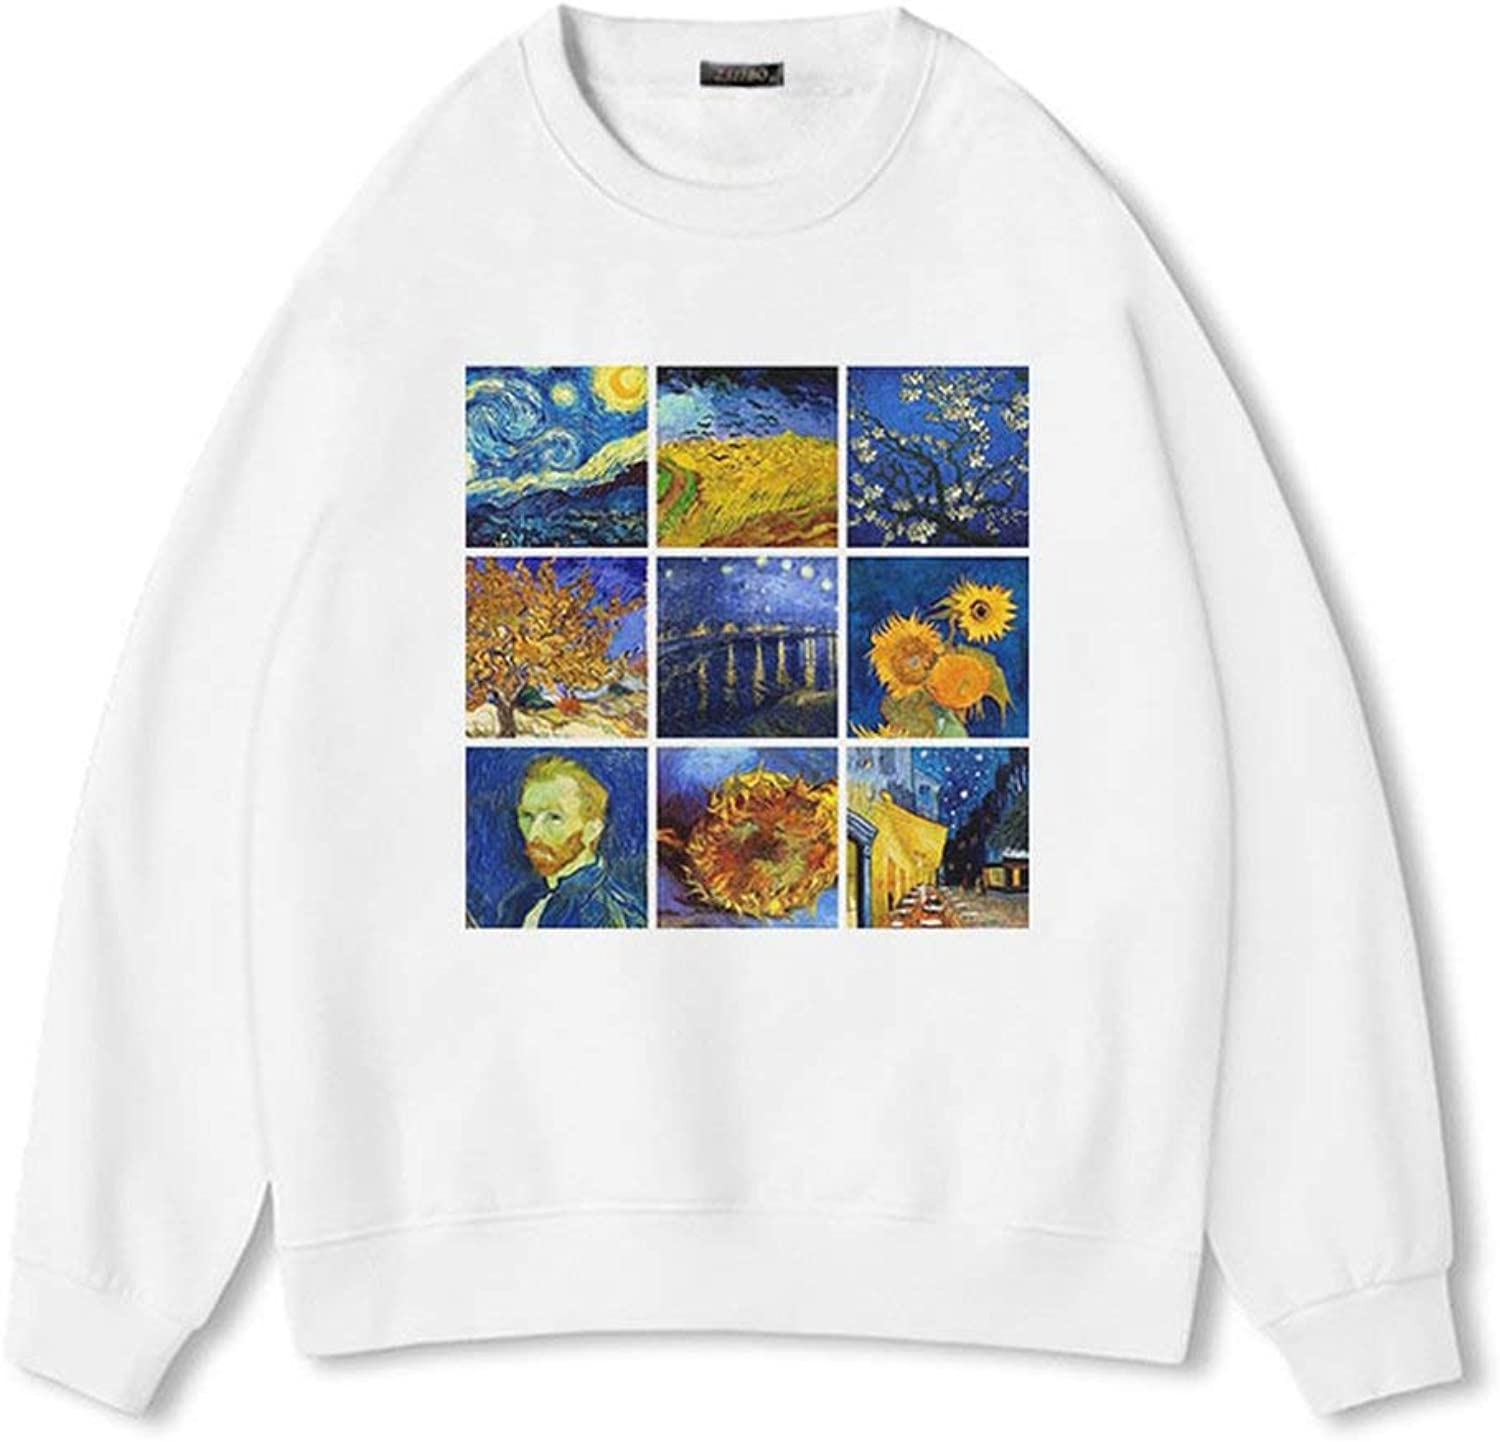 xiao S Art Oil Painting Women Weatershirt Winter Warm Soft Grunge Aesthetic Printed O Neck Harajuku Casual Tops